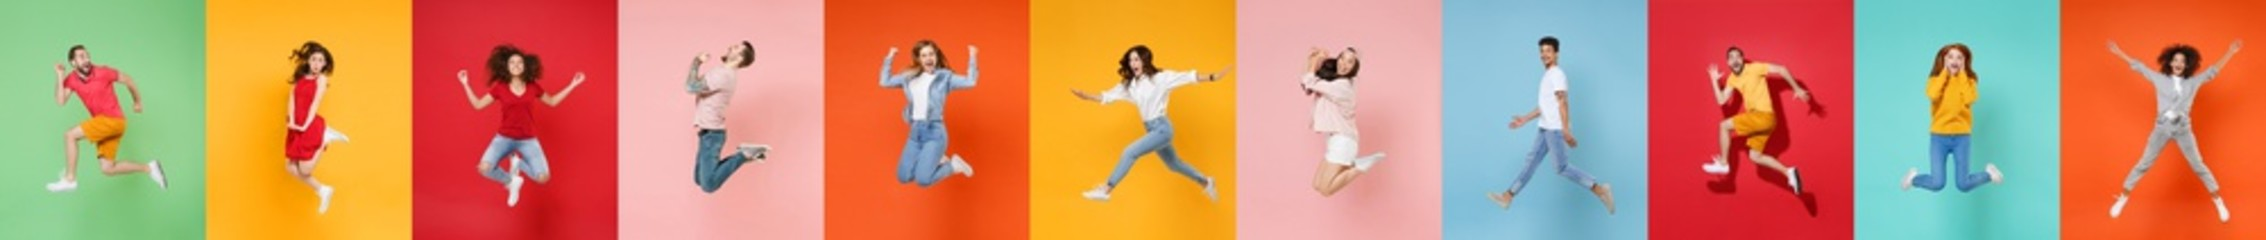 Photo set collage of eleven multiethnic expressive happy young people group wearing t-shirts having fun, jumping or flying up in air different poses isolated on colorful background, studio portraits.